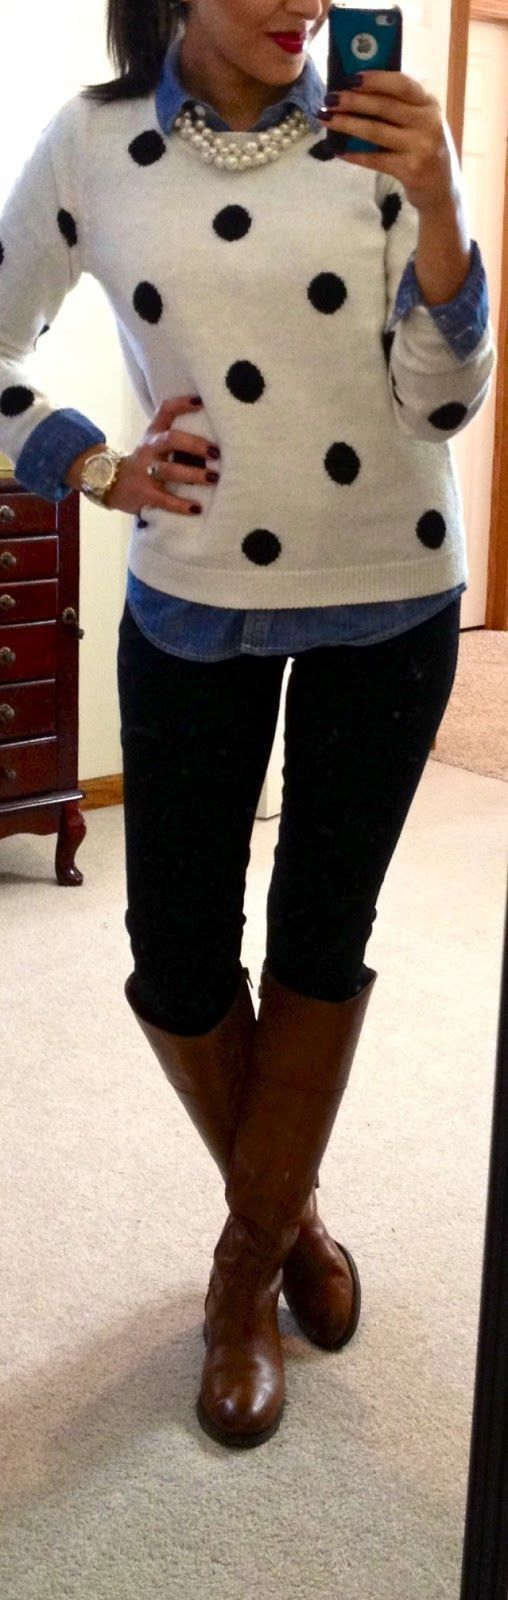 Preppy winter outfit - your denim shirt under a sweater....dots and pearls!